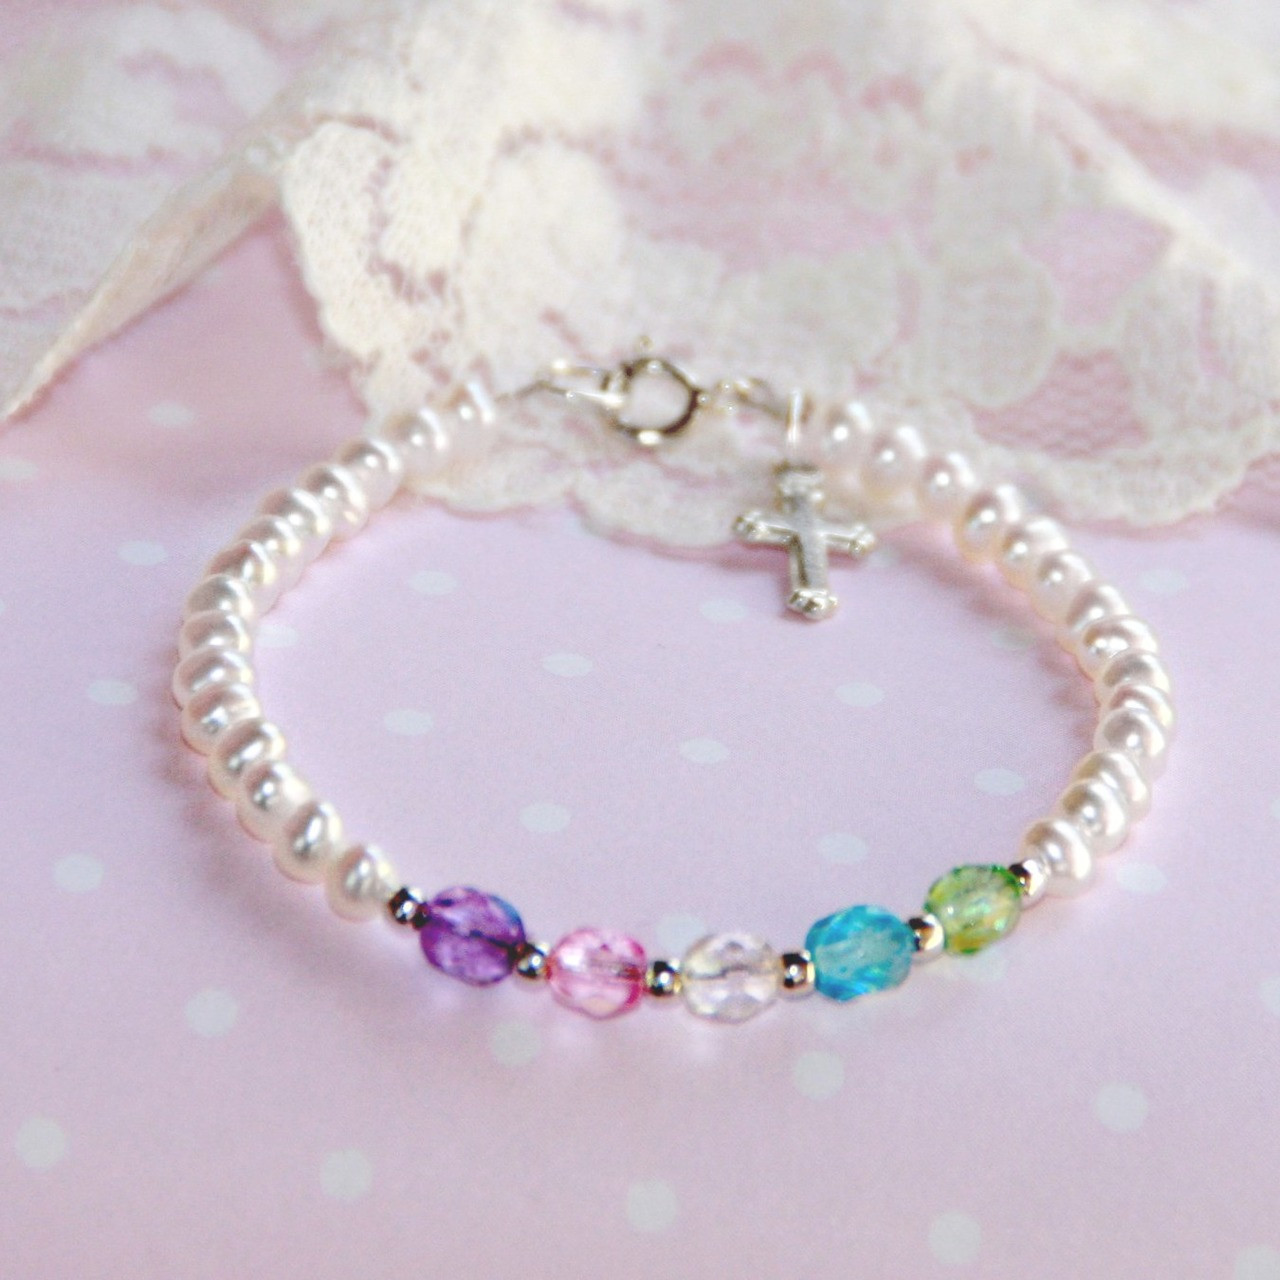 """STG-164  Freshwater Pearls Multi Crystal Top Selling 5"""" Bracelet with Sterling Silver Cross"""